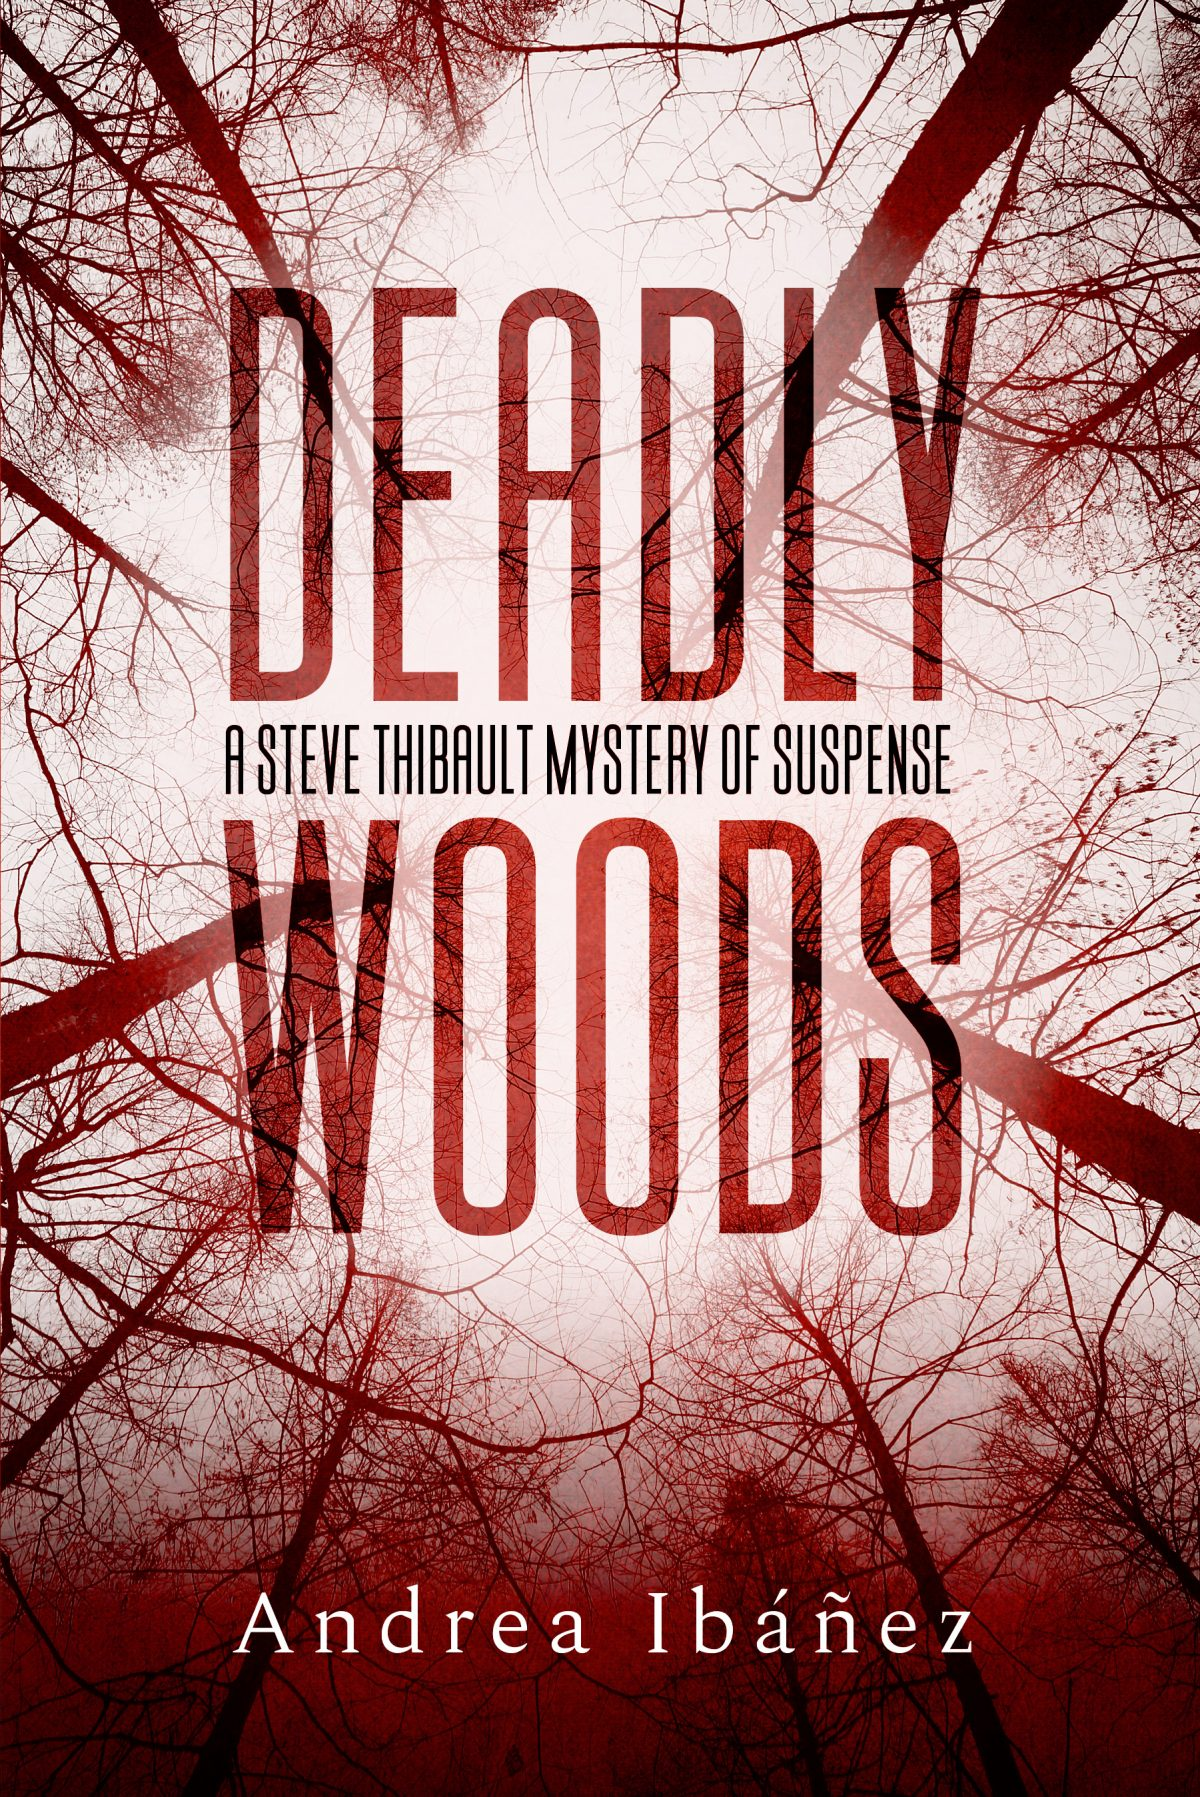 Deadly Woods: A Steve Thibault Mystery of Suspense